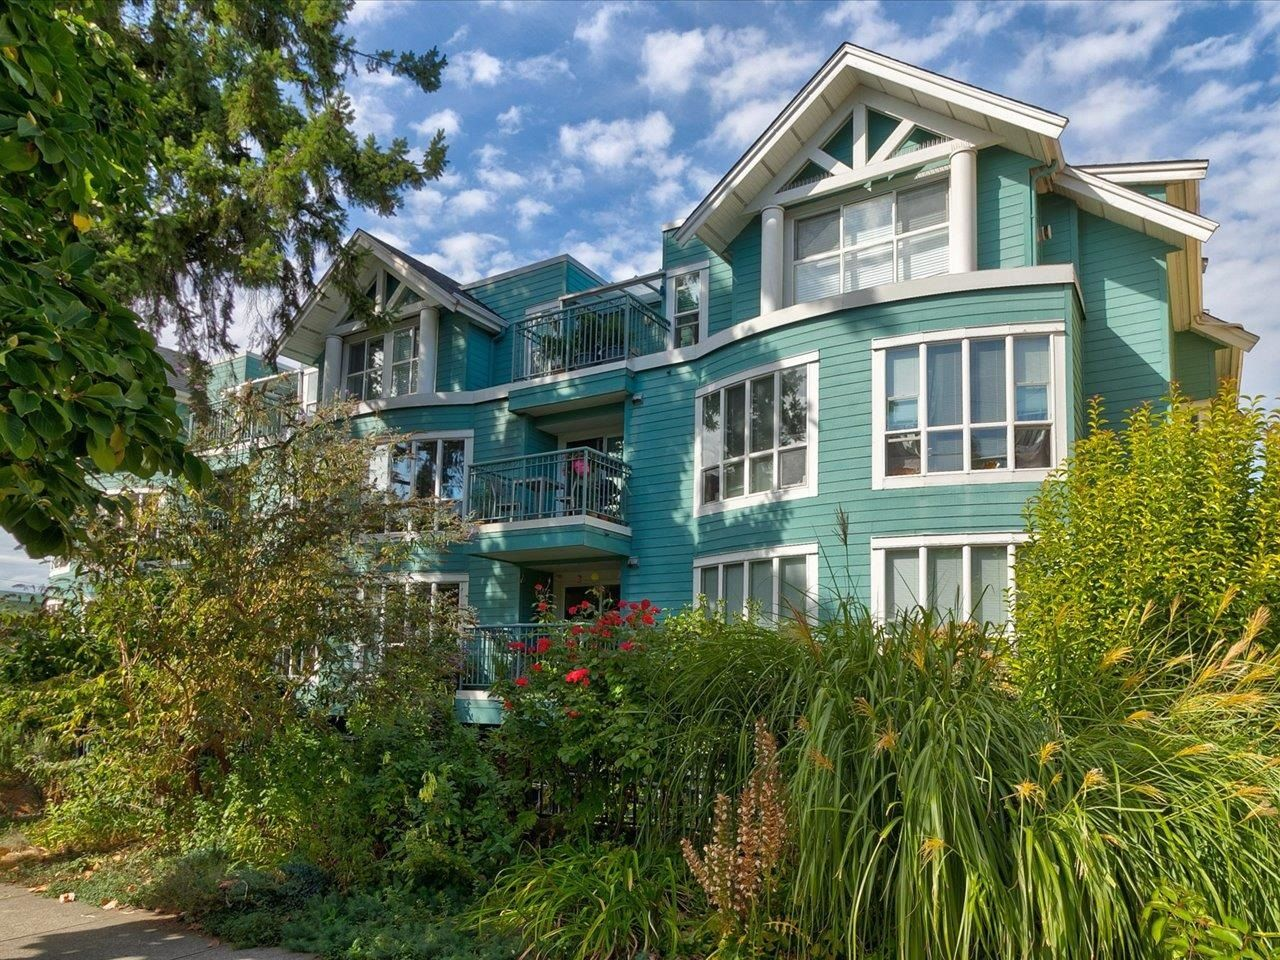 """Main Photo: 202 1617 GRANT Street in Vancouver: Grandview Woodland Condo for sale in """"Evergreen Place"""" (Vancouver East)  : MLS®# R2621057"""